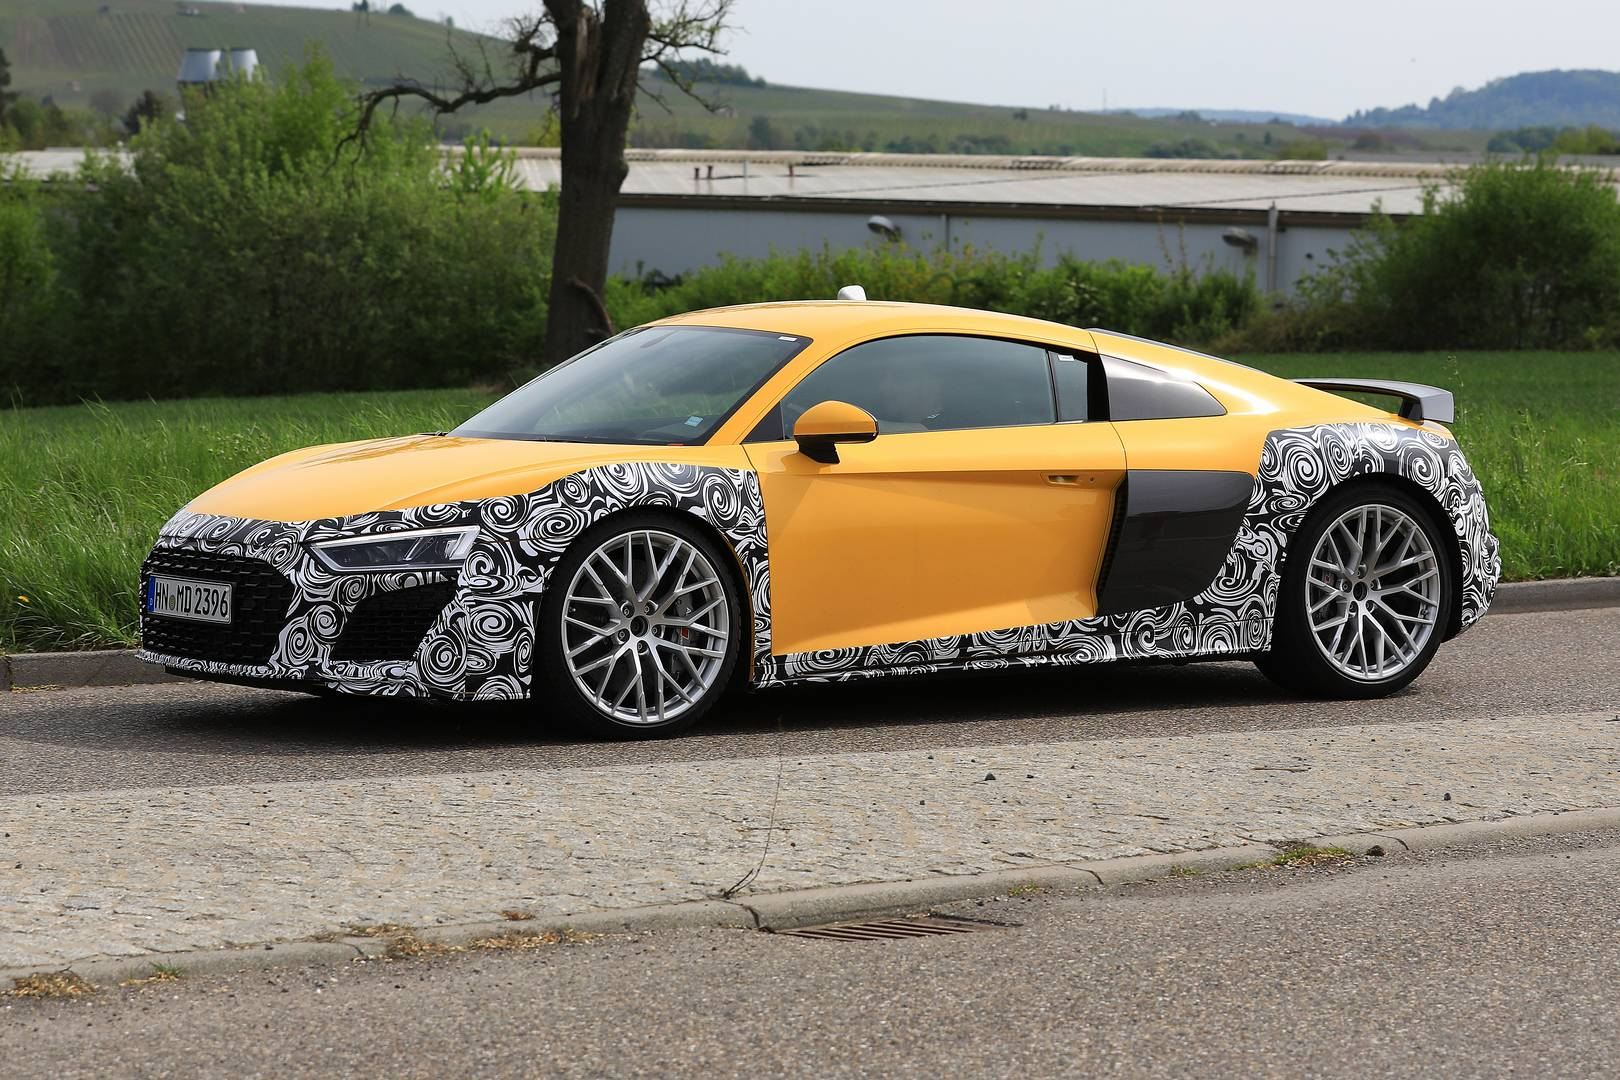 magazine how spyder much drops automobile does cost quarter news drop three pricing top a motion plus front audi in